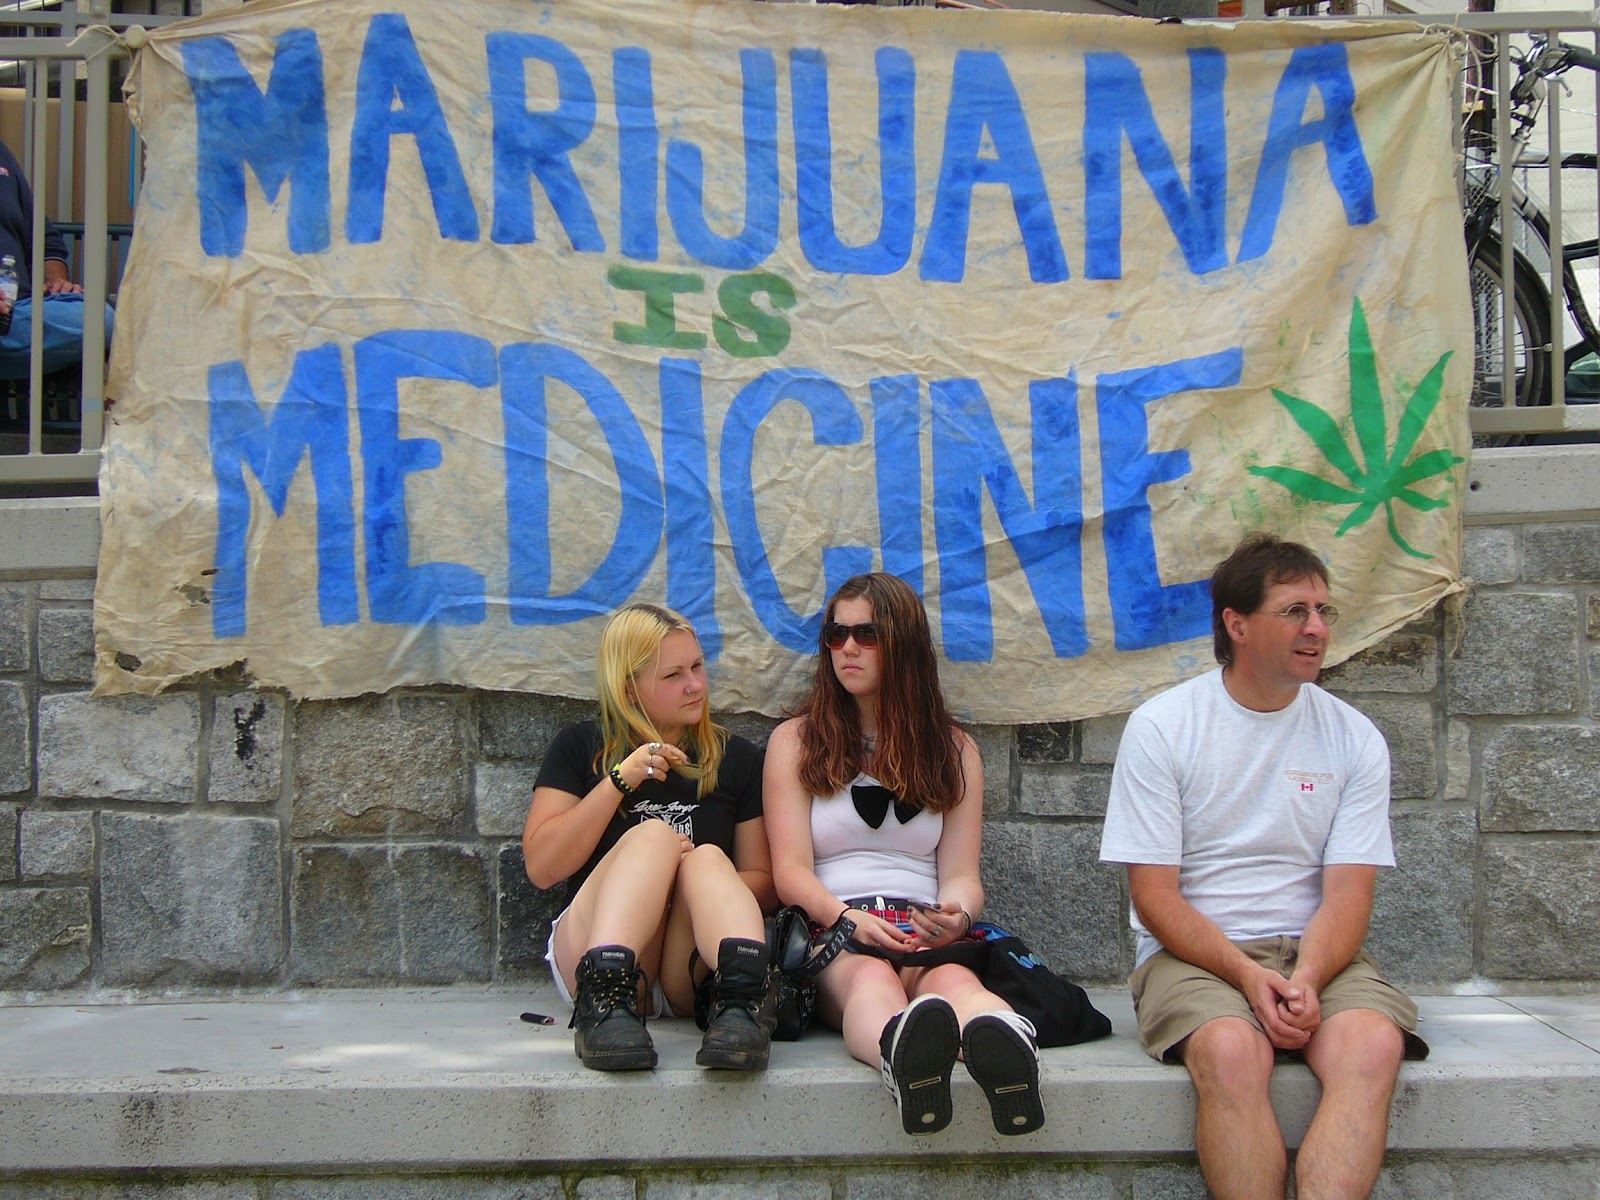 People protesting for cannabis legalization at Vancouver hemp rally.